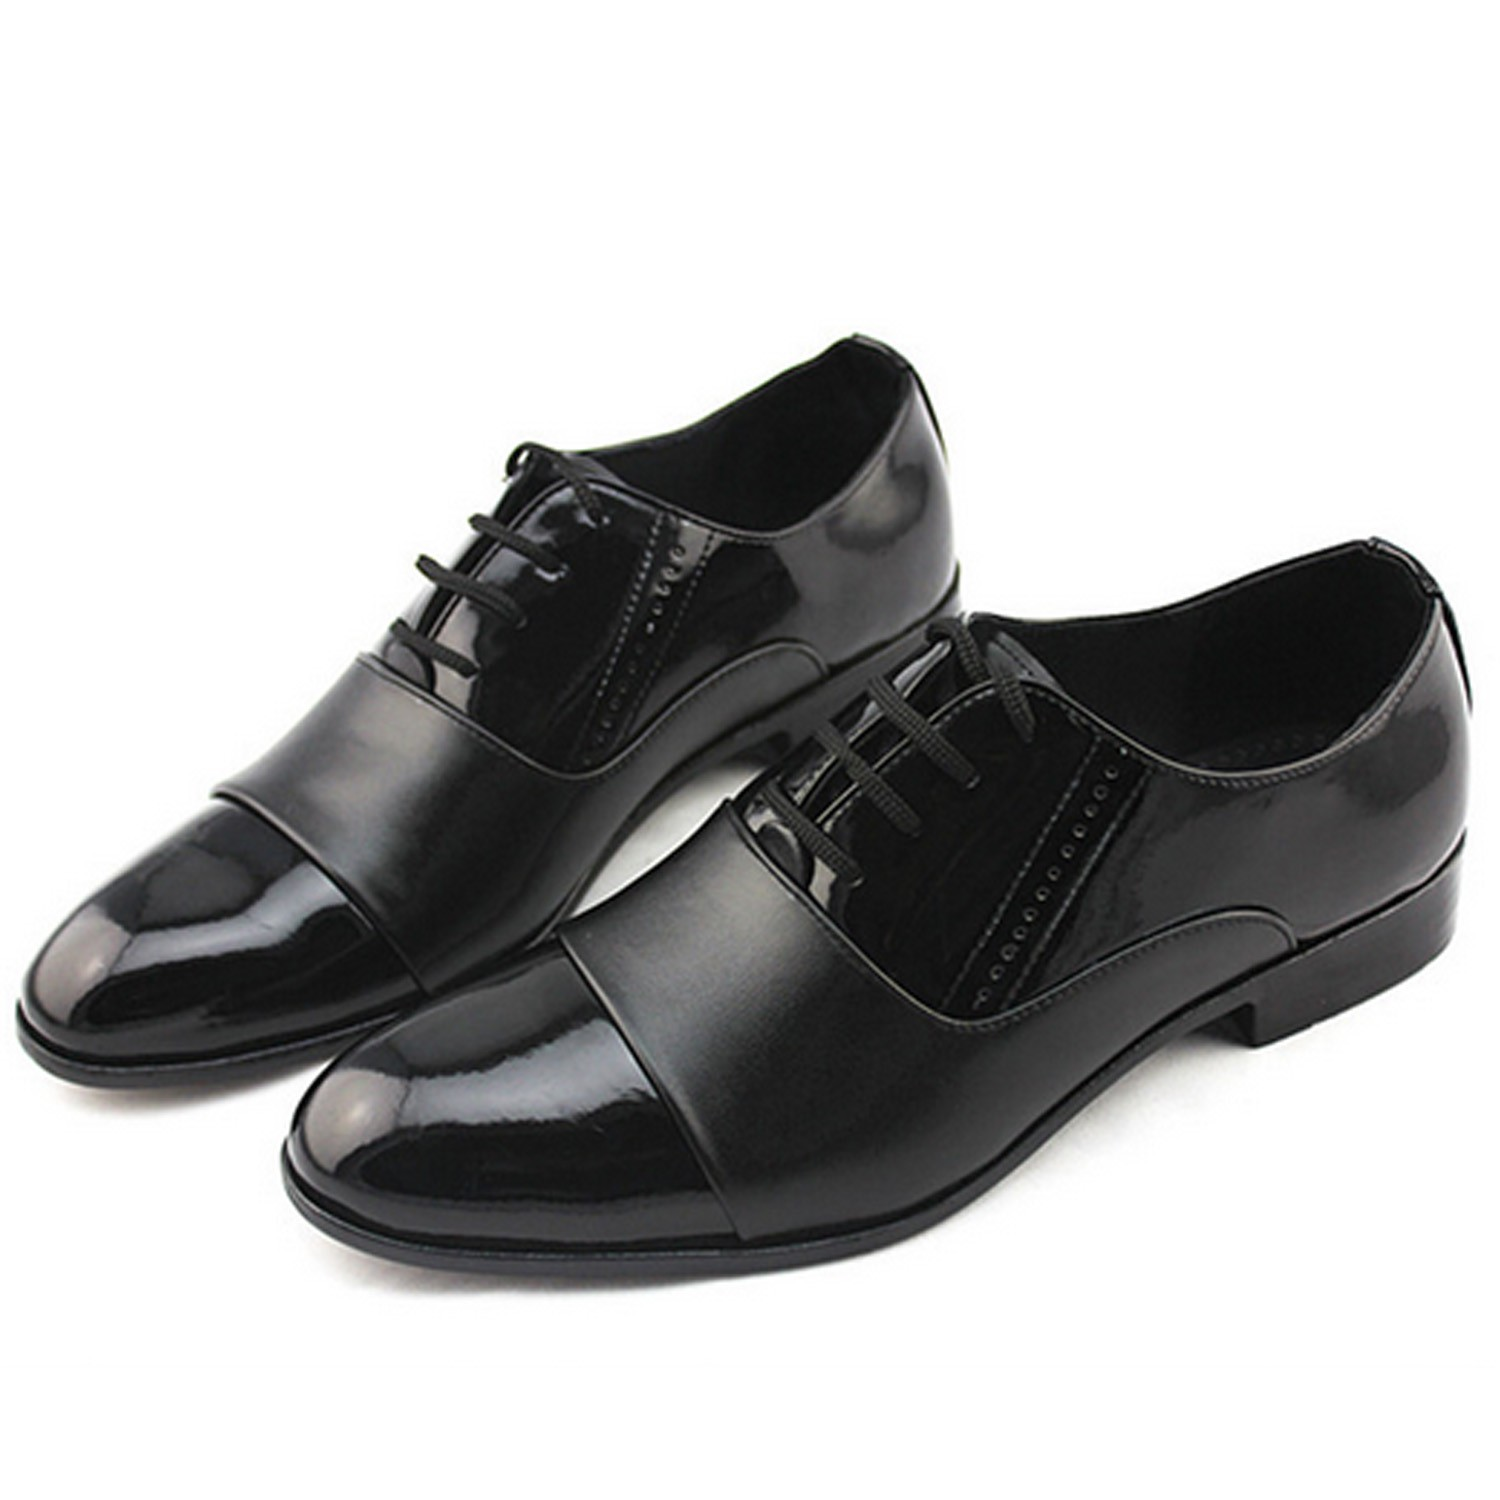 Mens Dress Tuxedo Shoes - BM11#